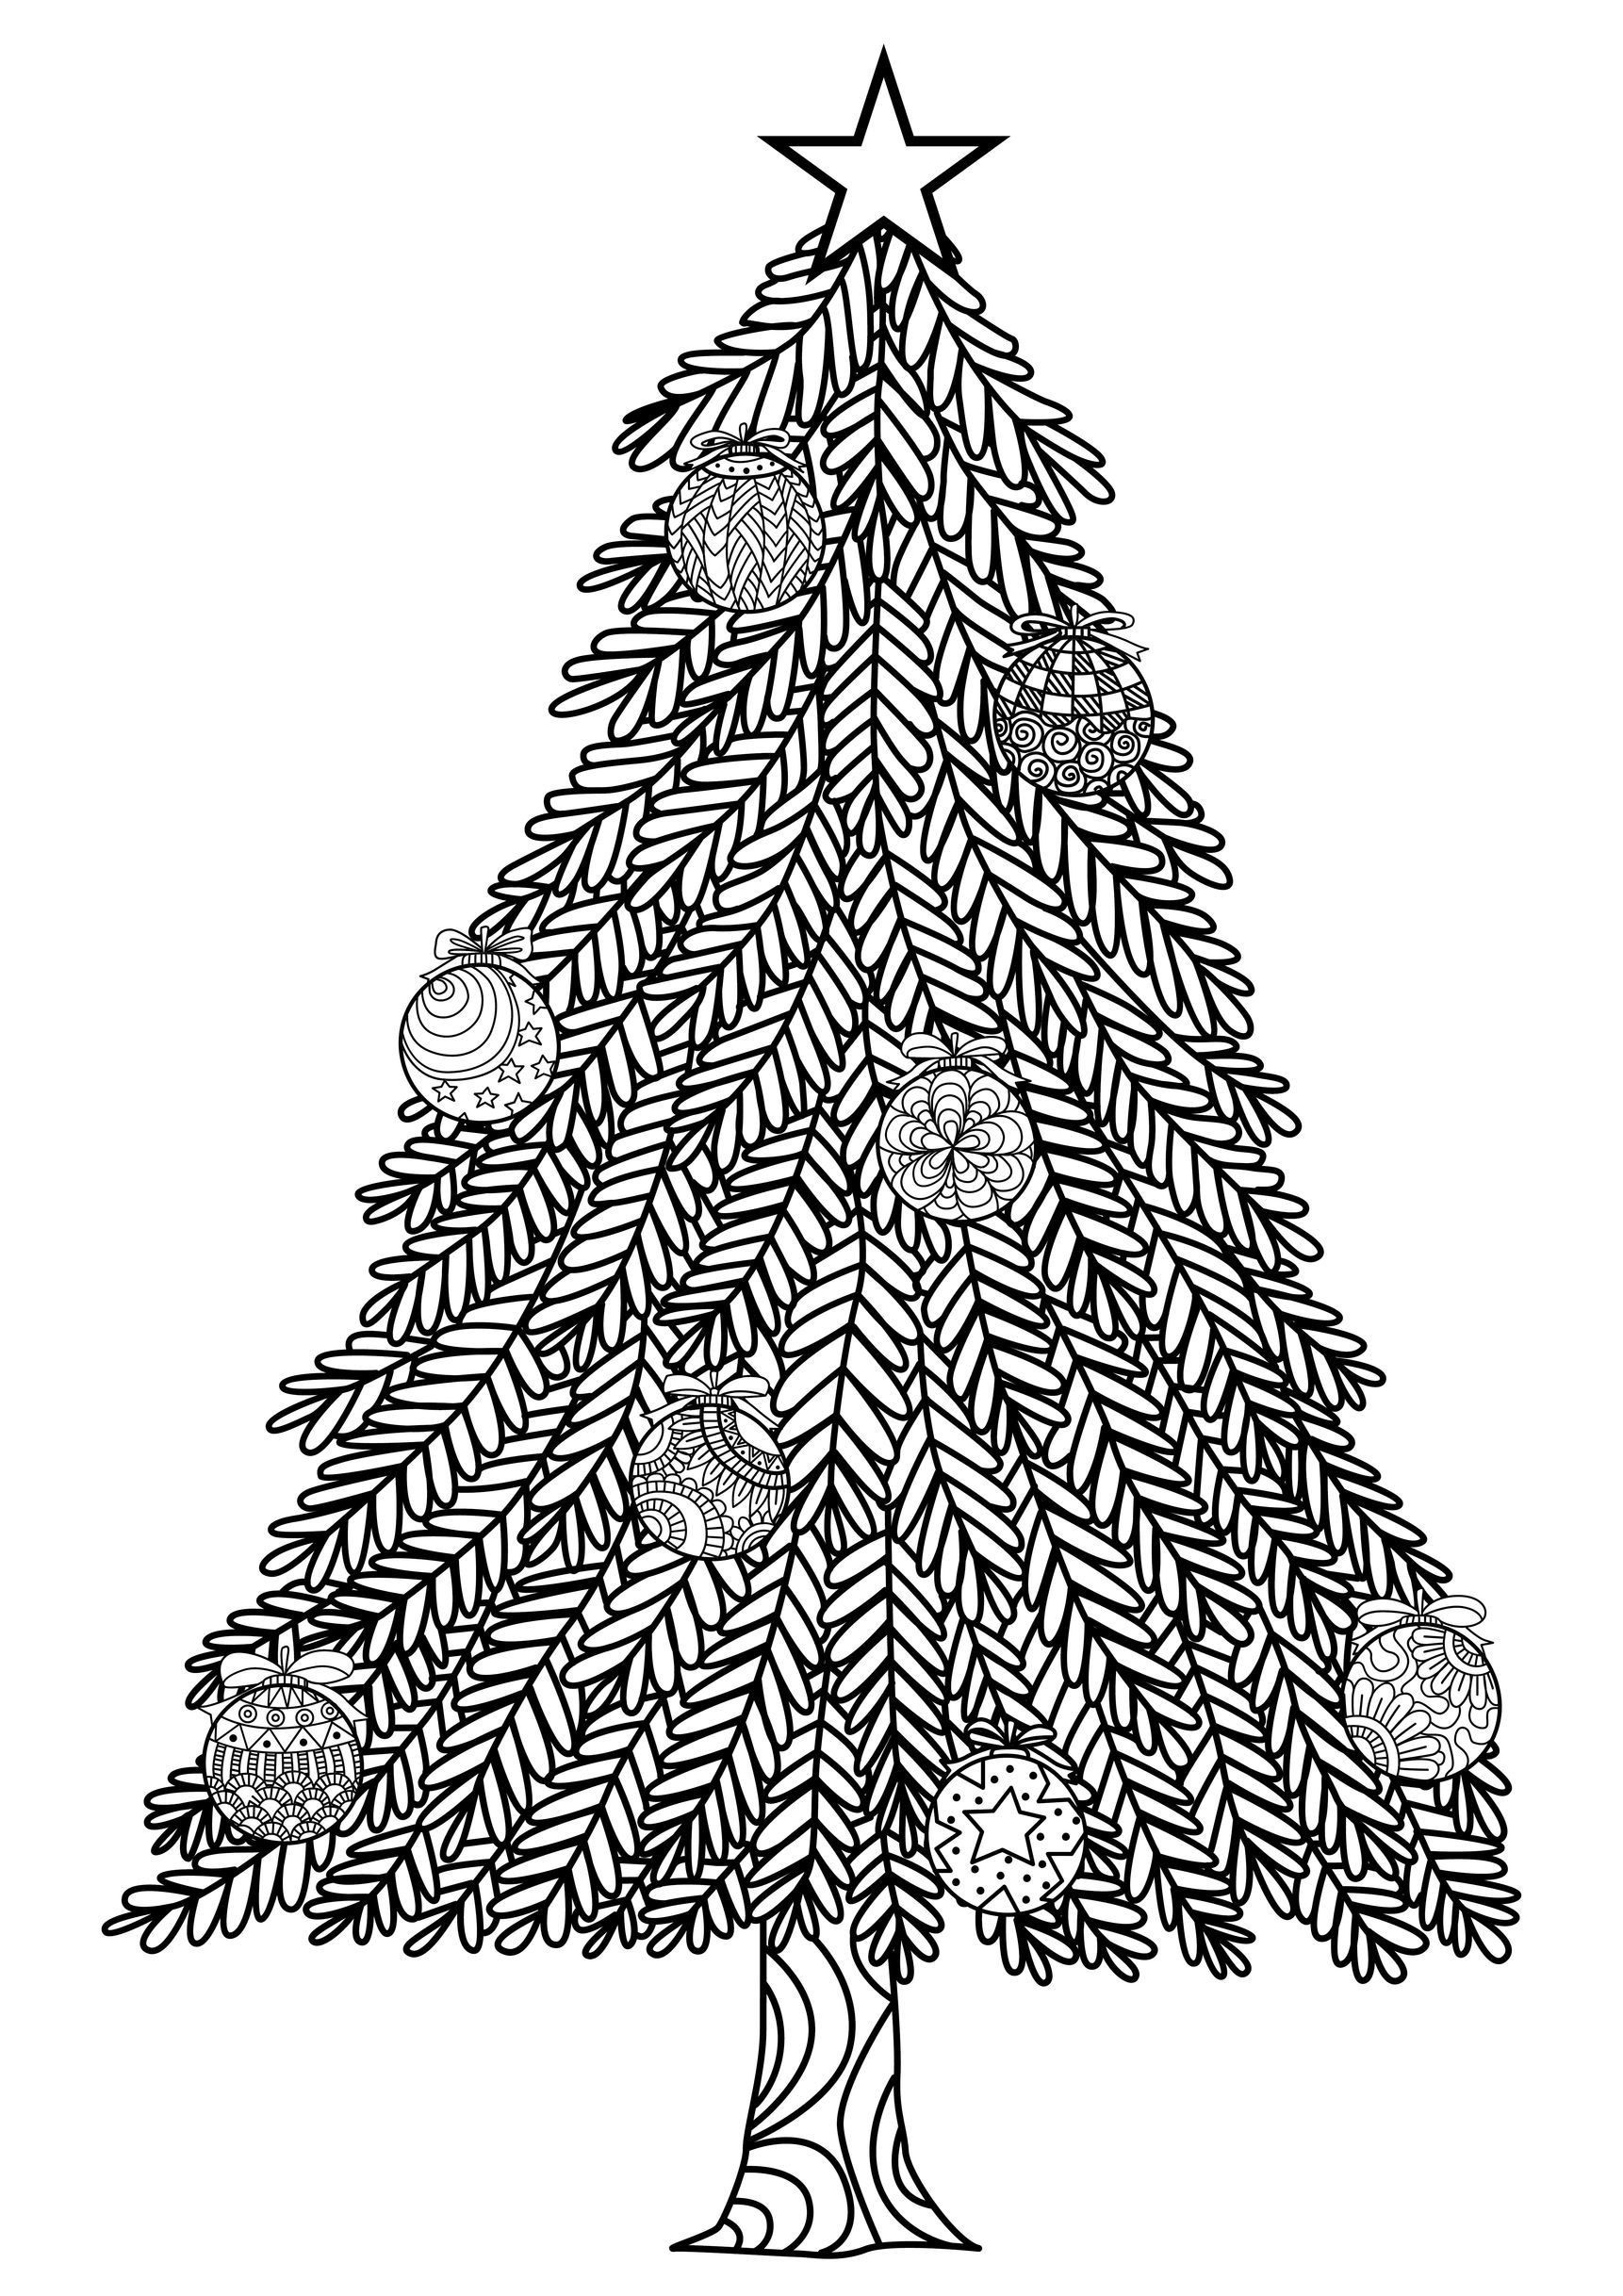 Christmas Tree Zentangle Style With Balls And A Big Star In The Top From